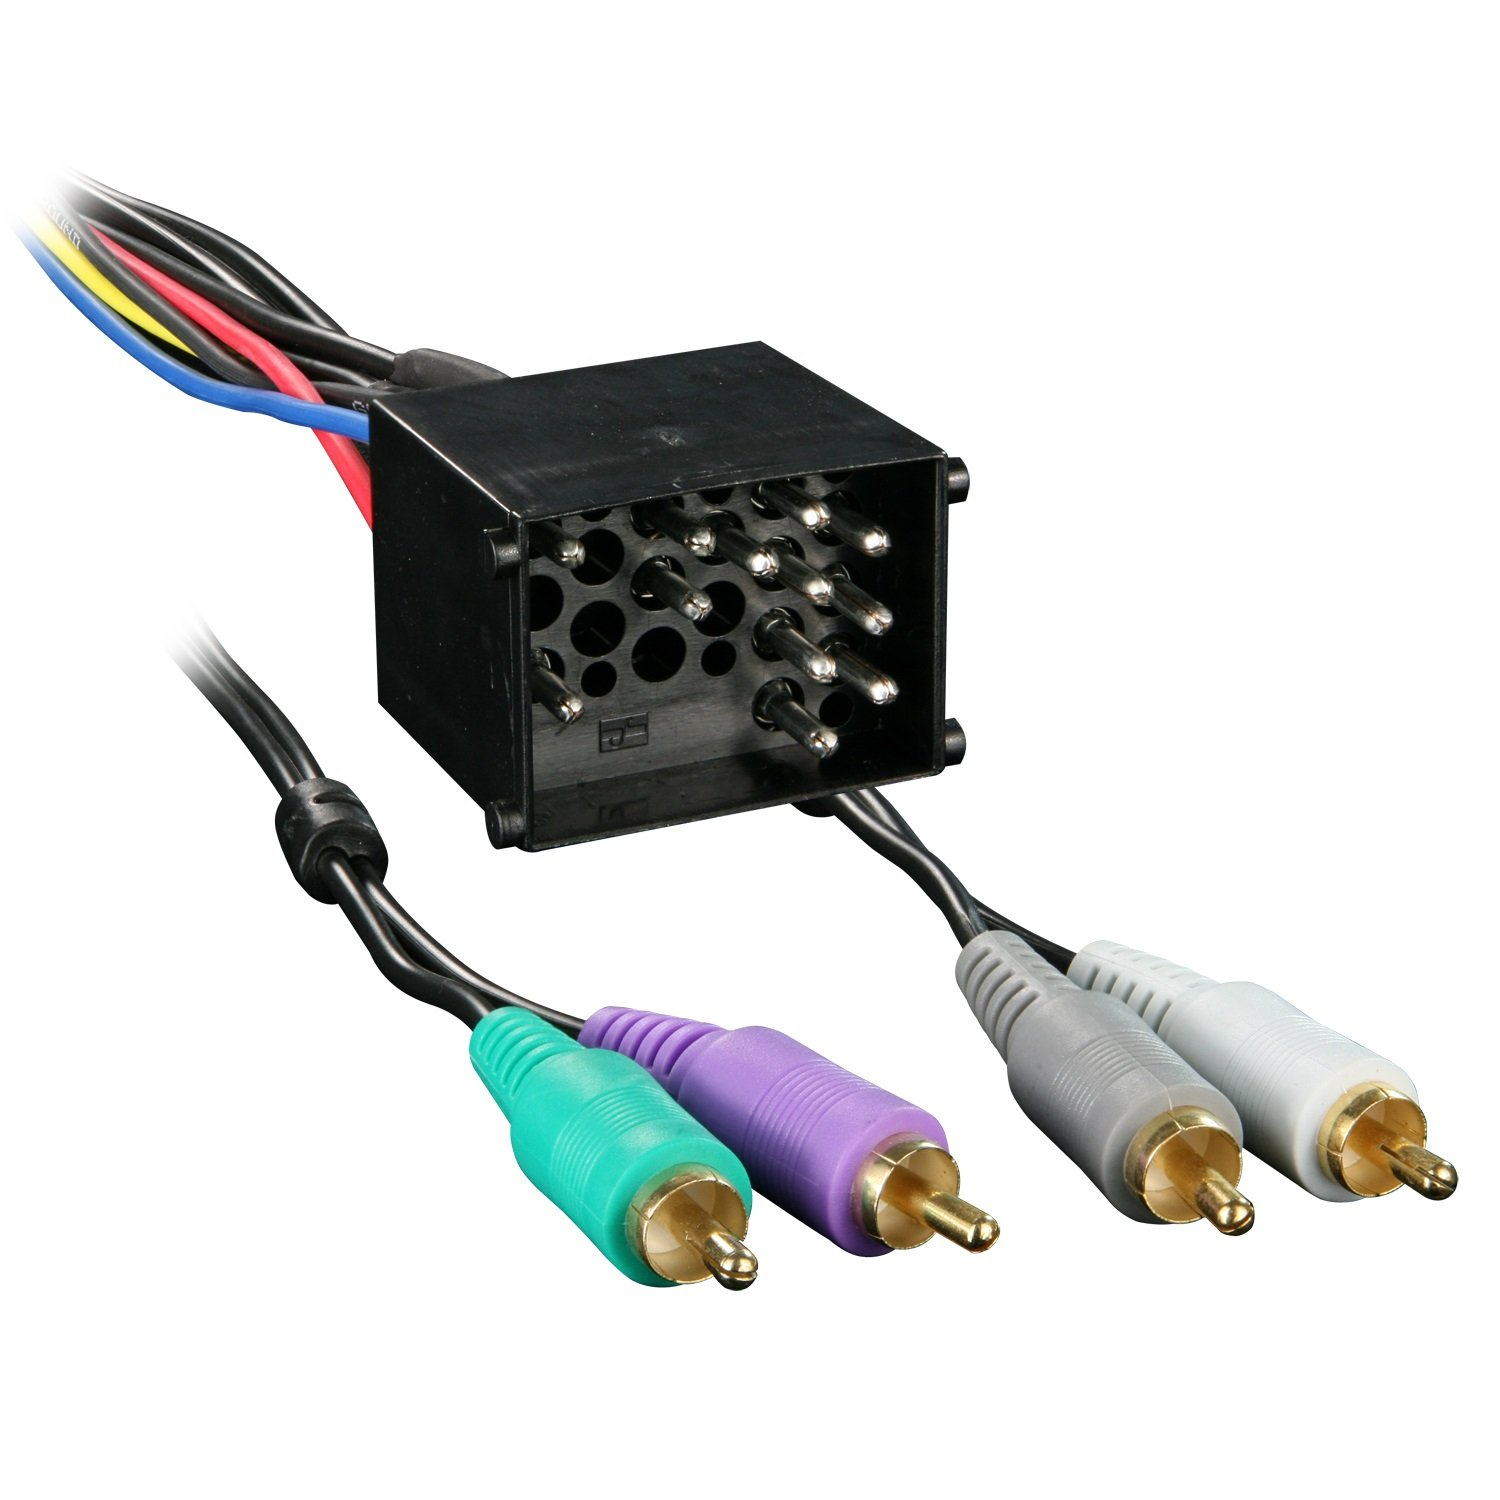 71tz8T3DFSL._SL1500_ amazon com metra 70 8591 radio wiring harness for bmw amp Audio Wiring Harnesses at crackthecode.co